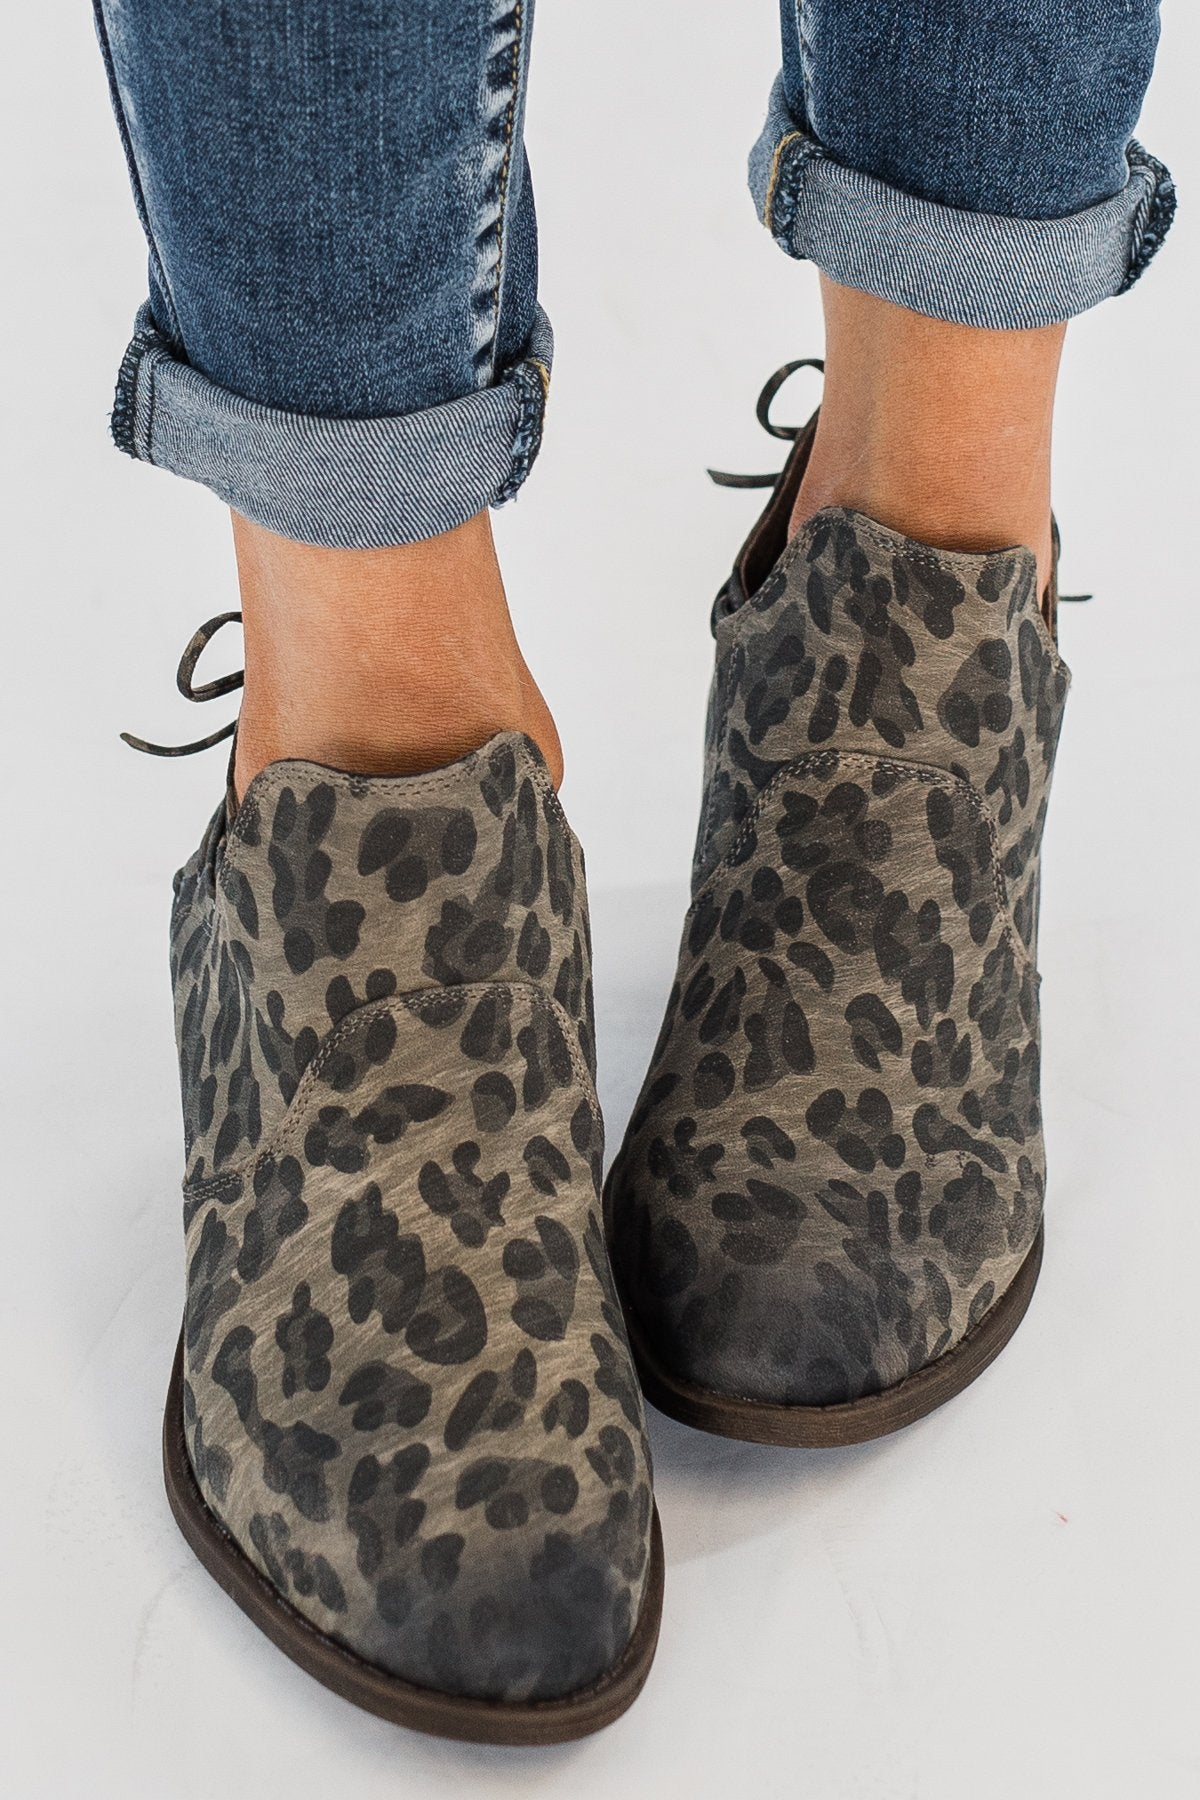 Size 7.5 Very G Womens Twinkle Round Toe Ankle Fashion Boots Leopard